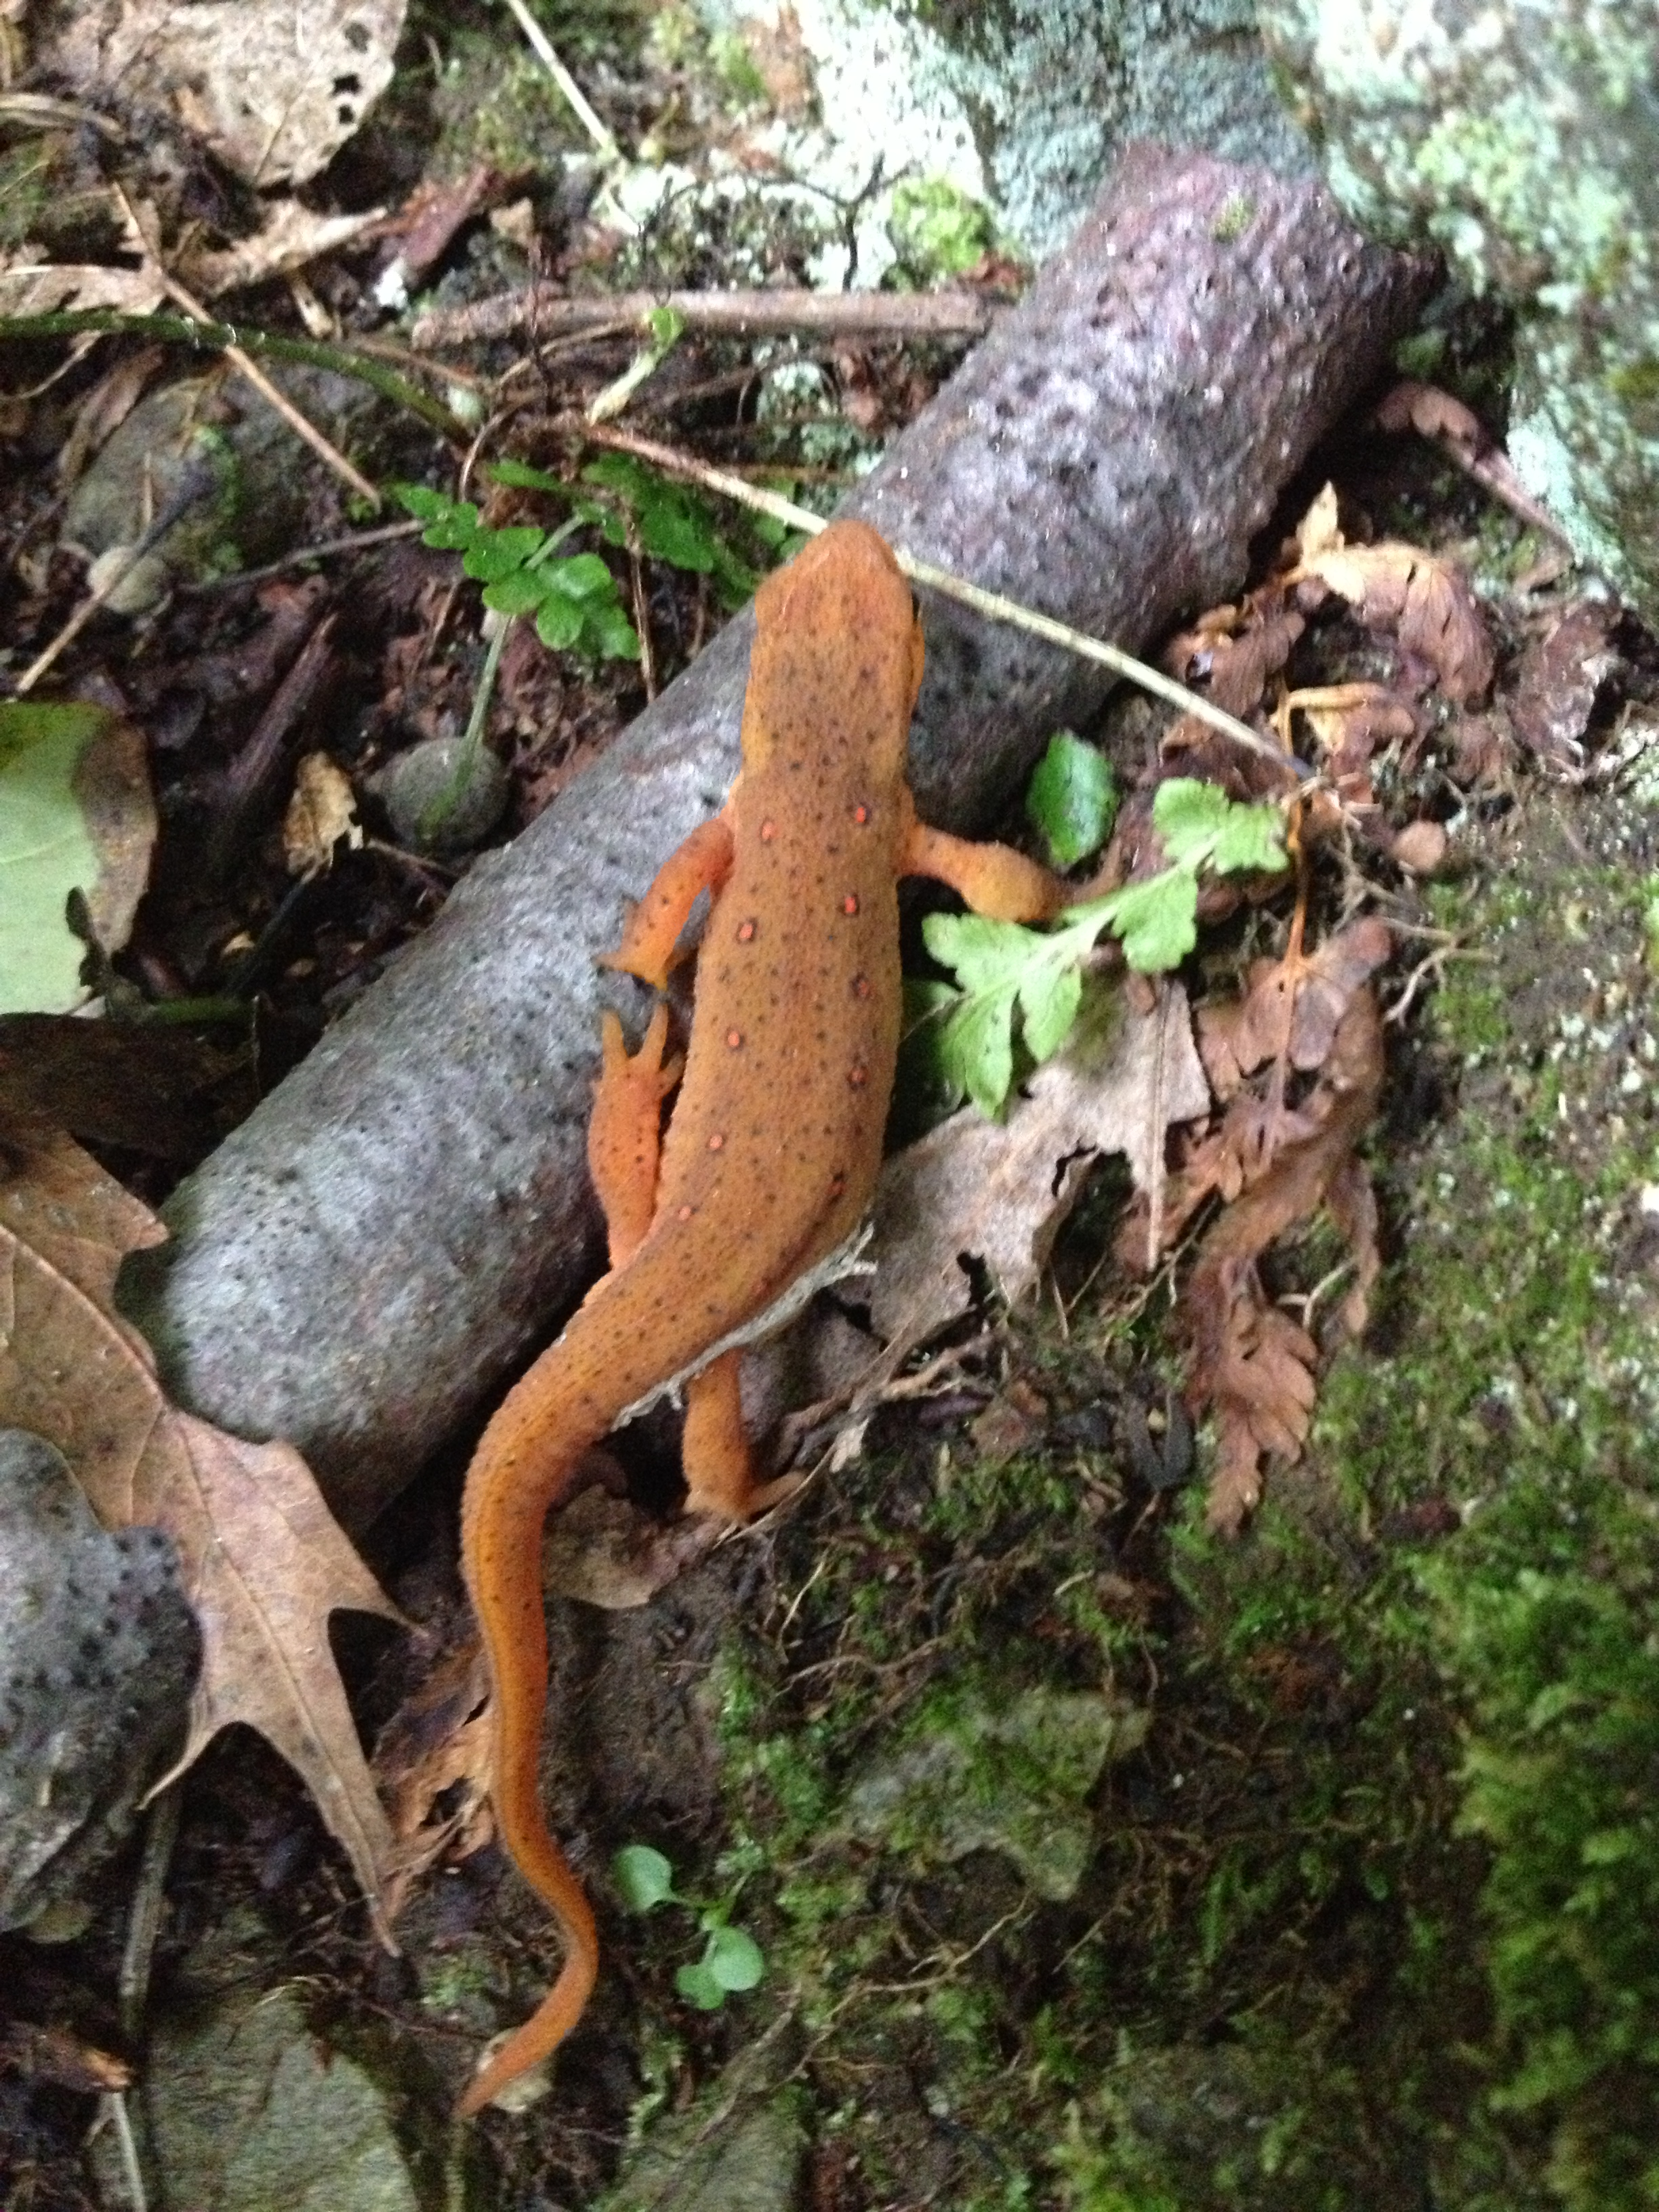 We saw a newt on our hike the next day.